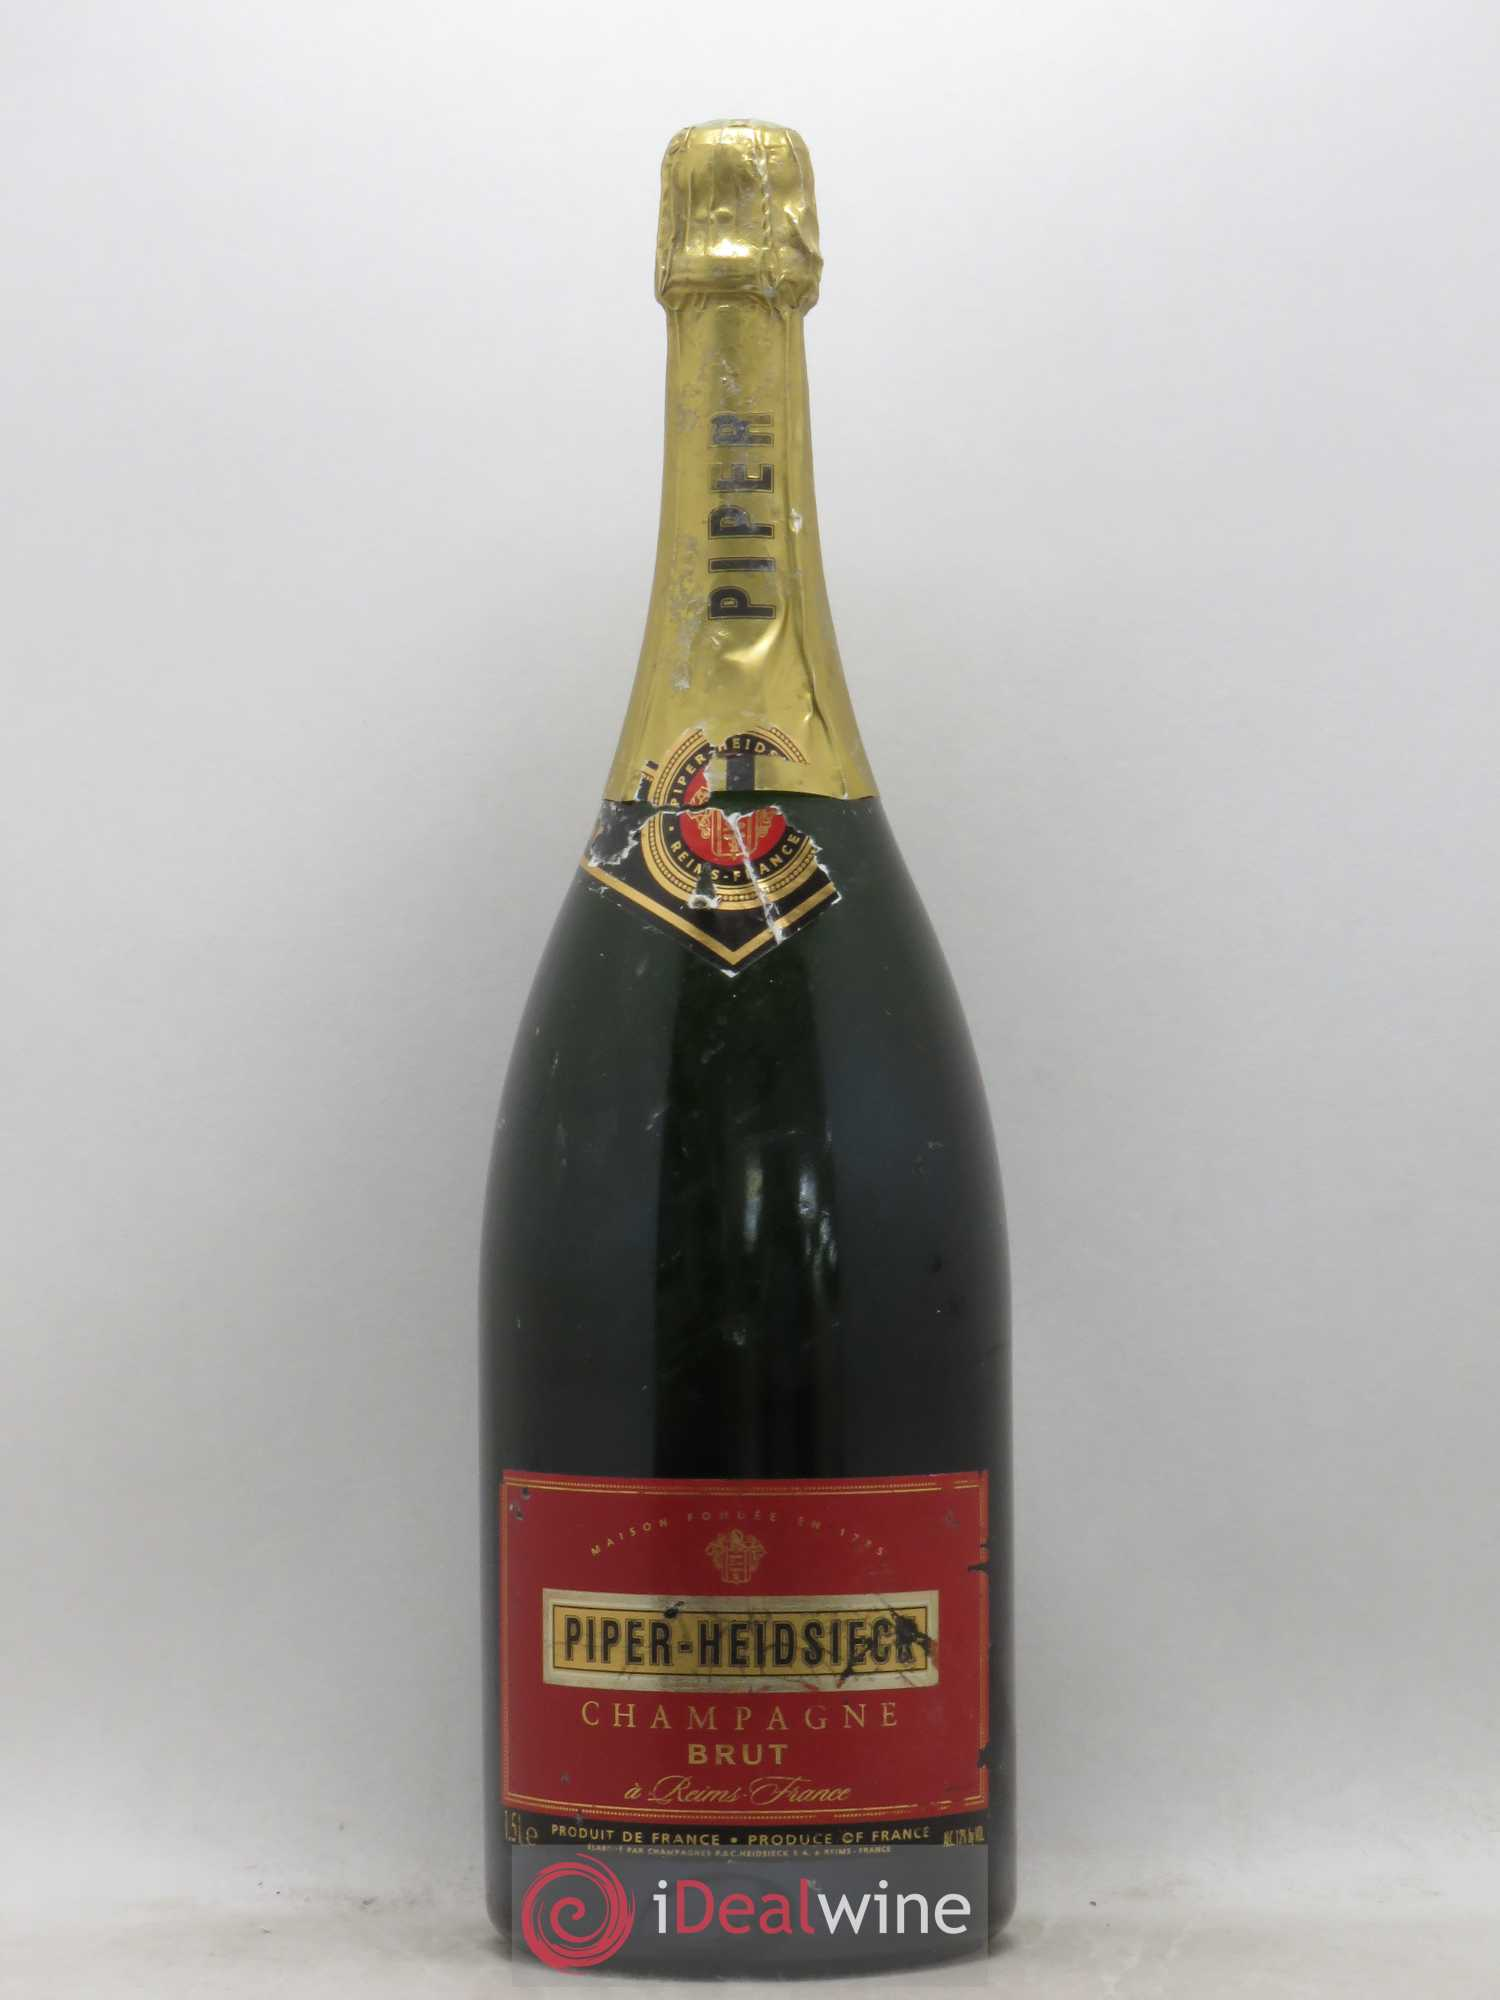 Champagne Piper Heidsieck  - Lot of 1 Magnum